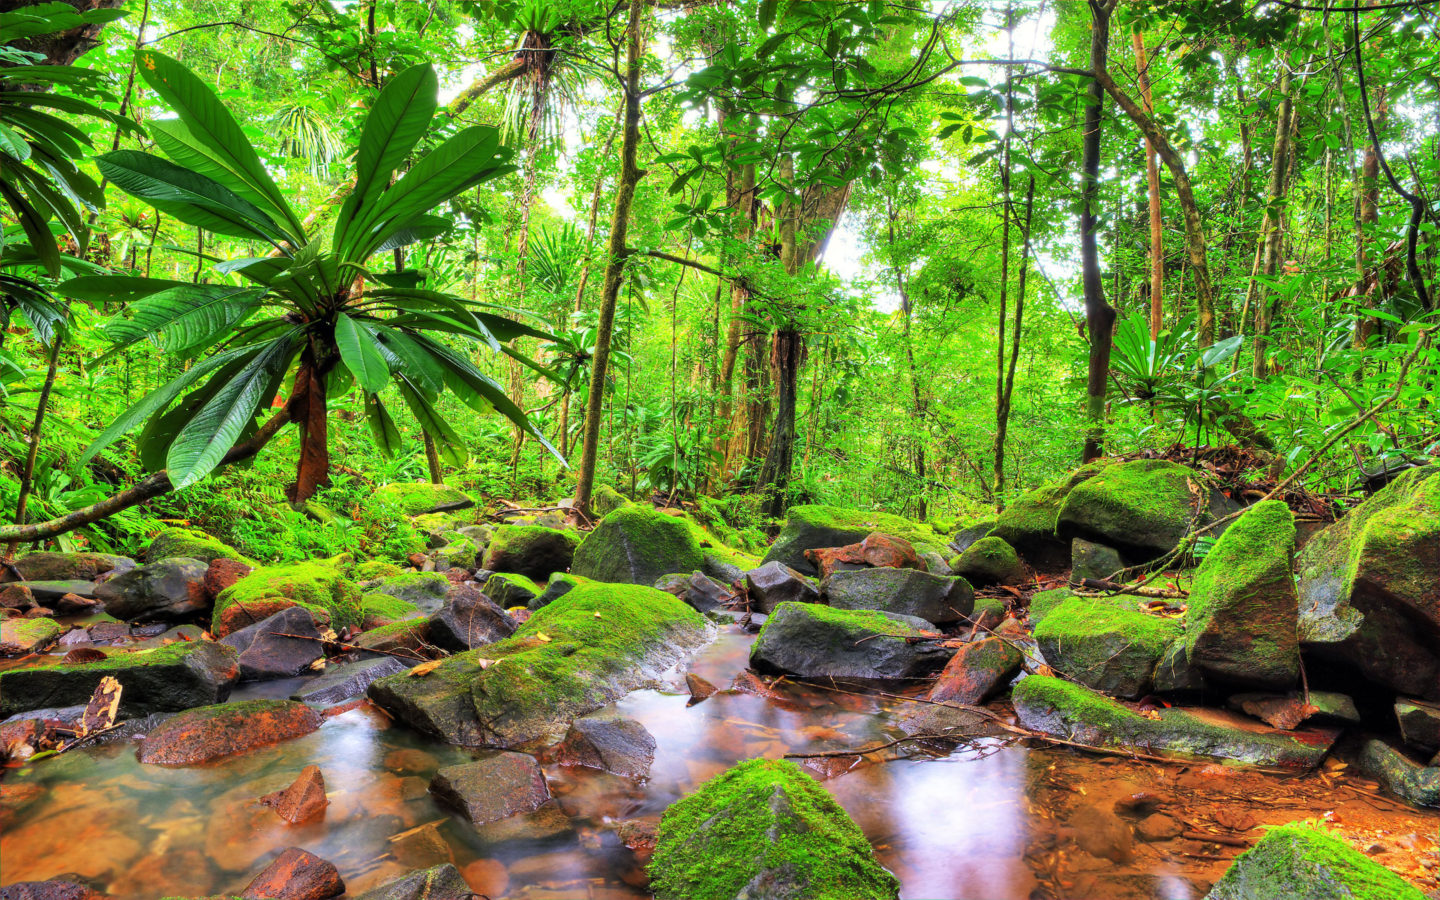 Falling Snow Wallpaper For Ipad Exotic Tropical Landscape Jungle Flow Stones Rocks With